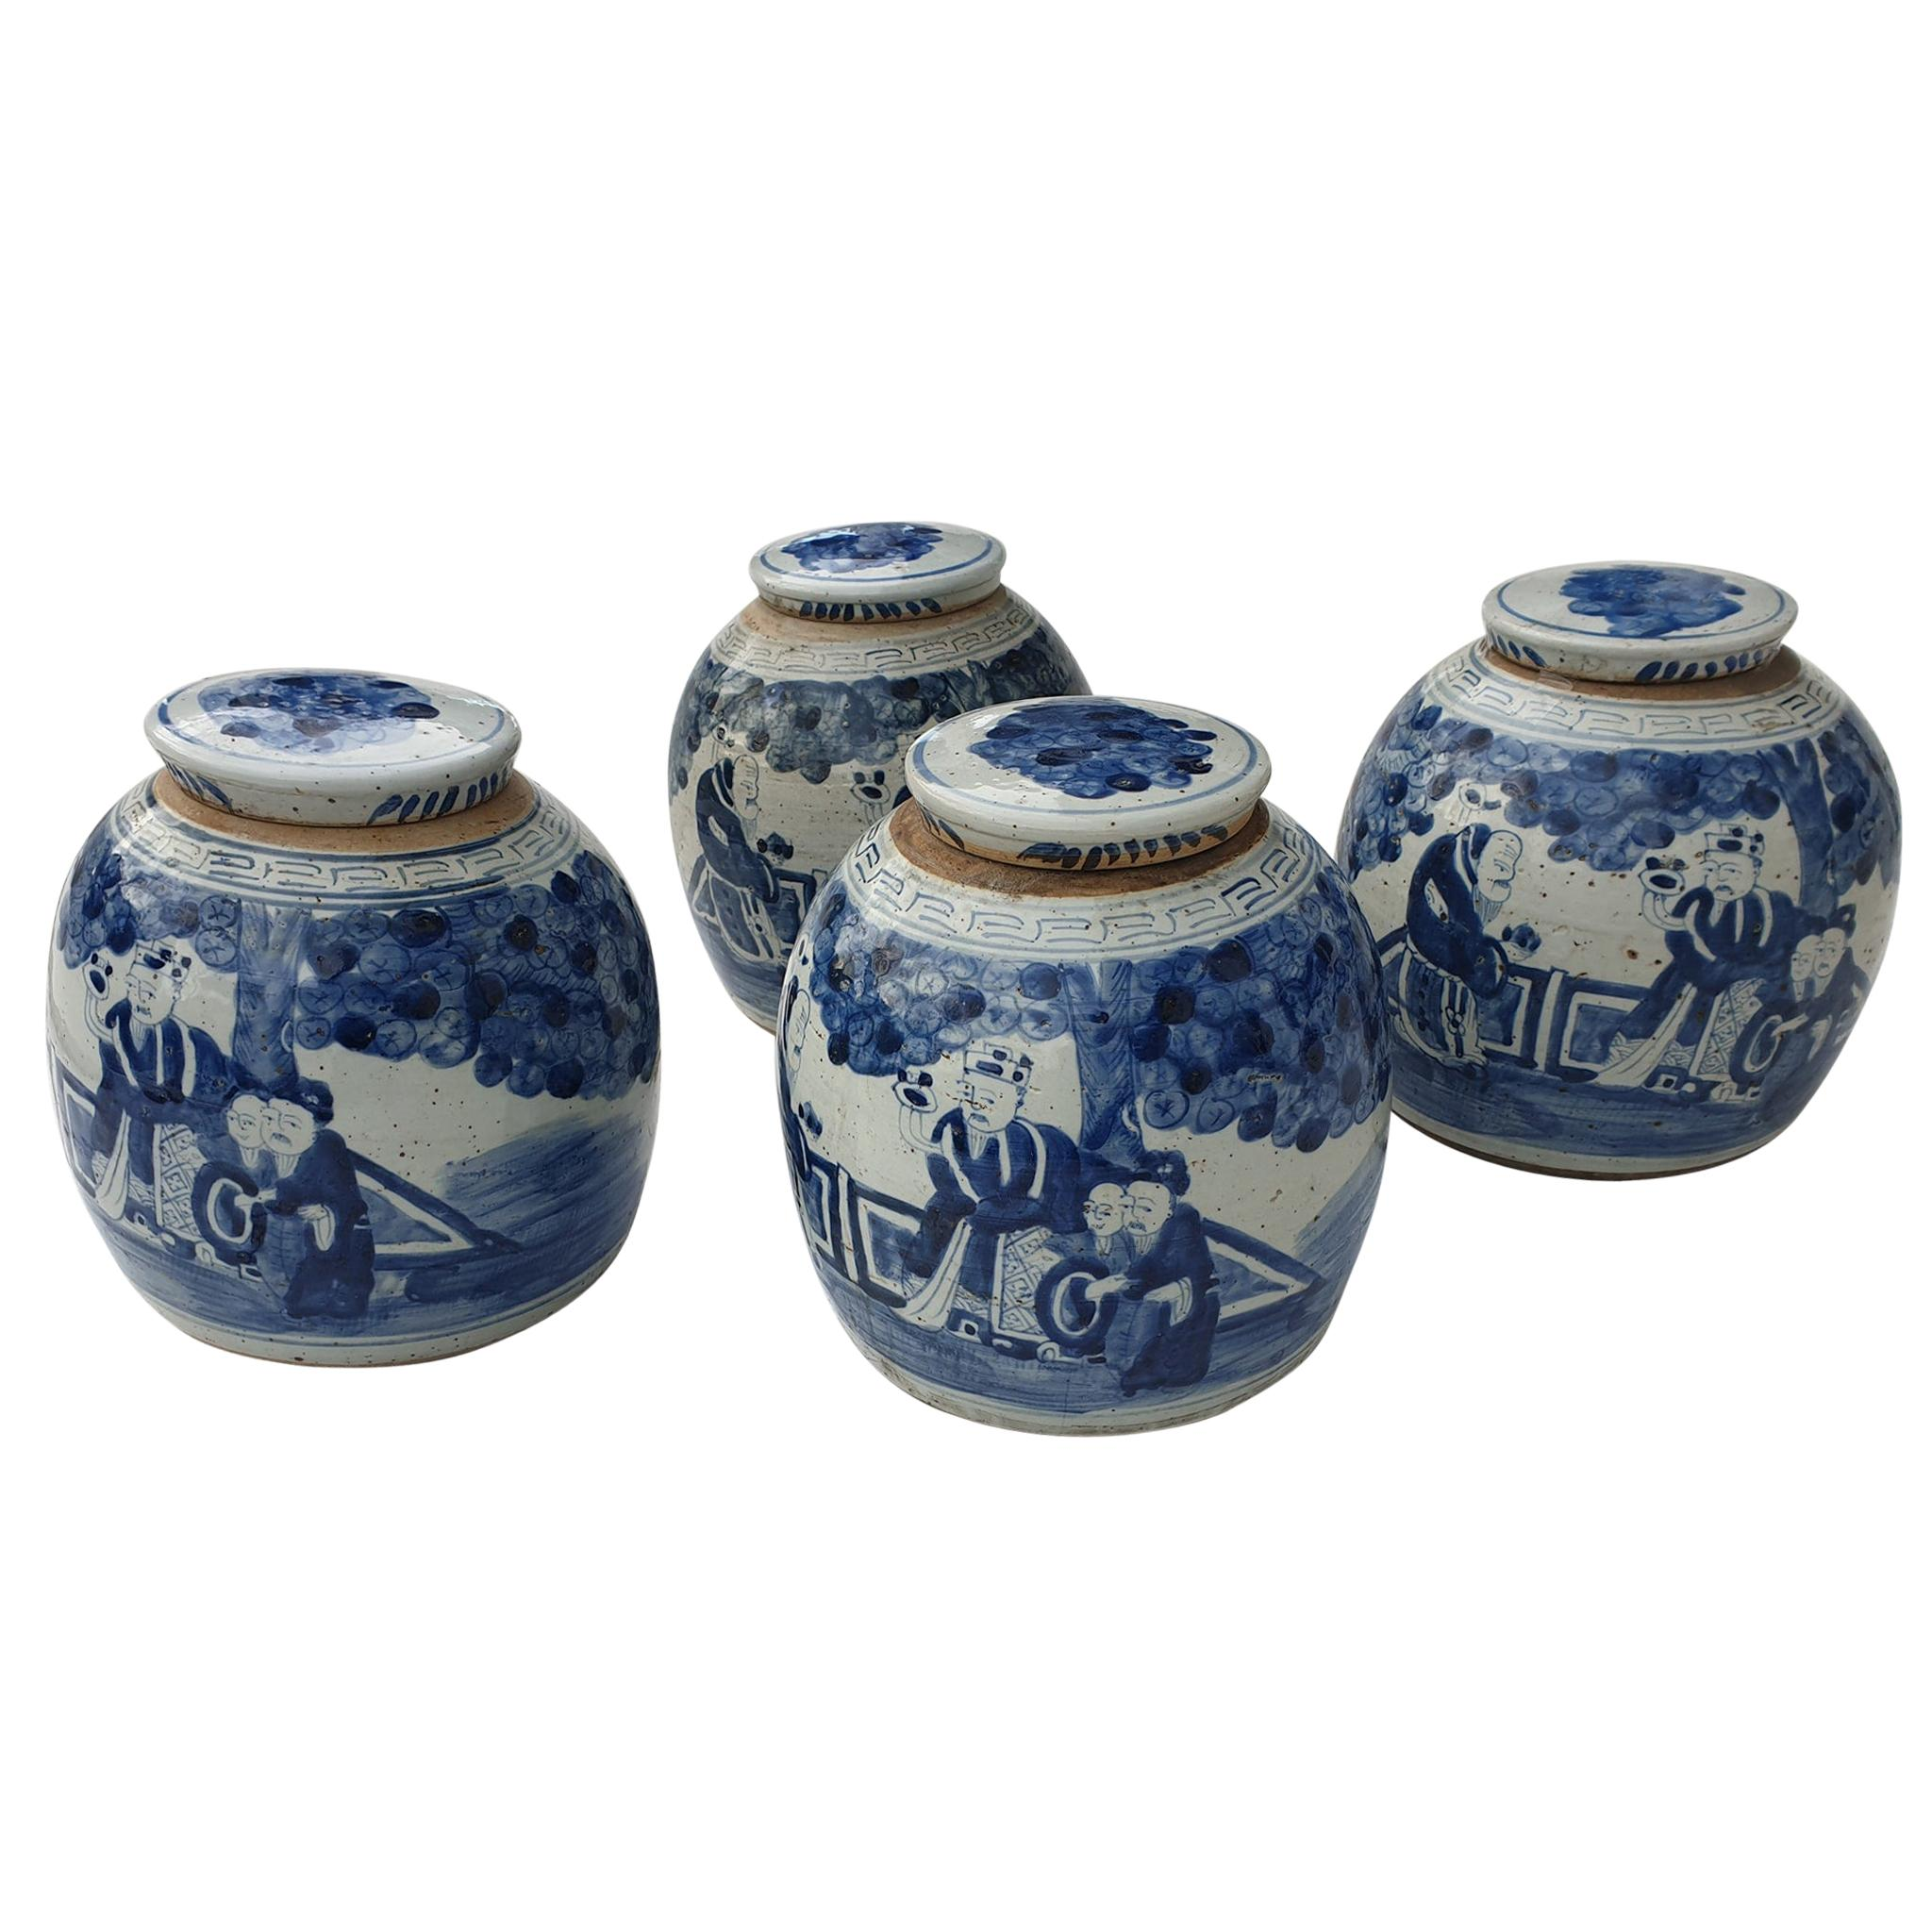 One of Two Chinese Porcelain Glazed Figural Ginger Jars with Lids, 19th Century